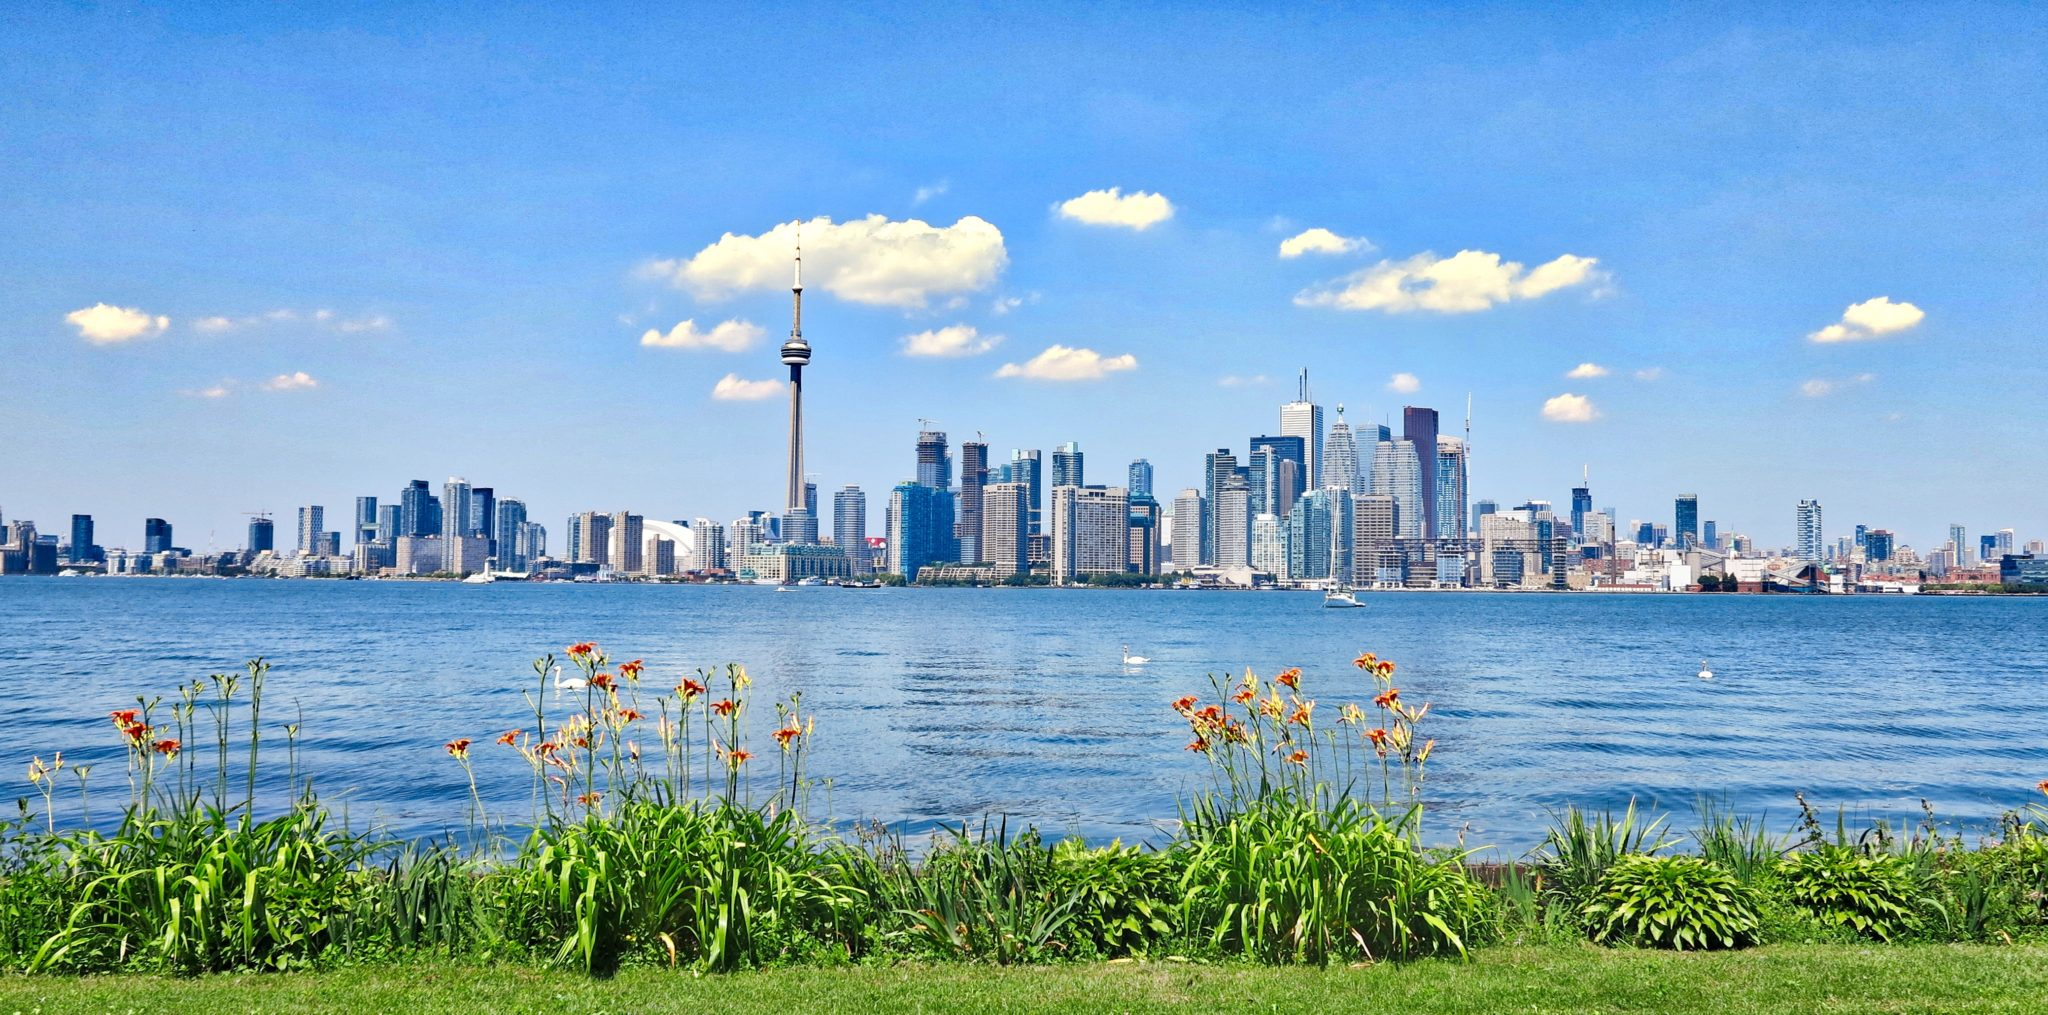 Toronto Waterfront, as we see it from Toronto Island.